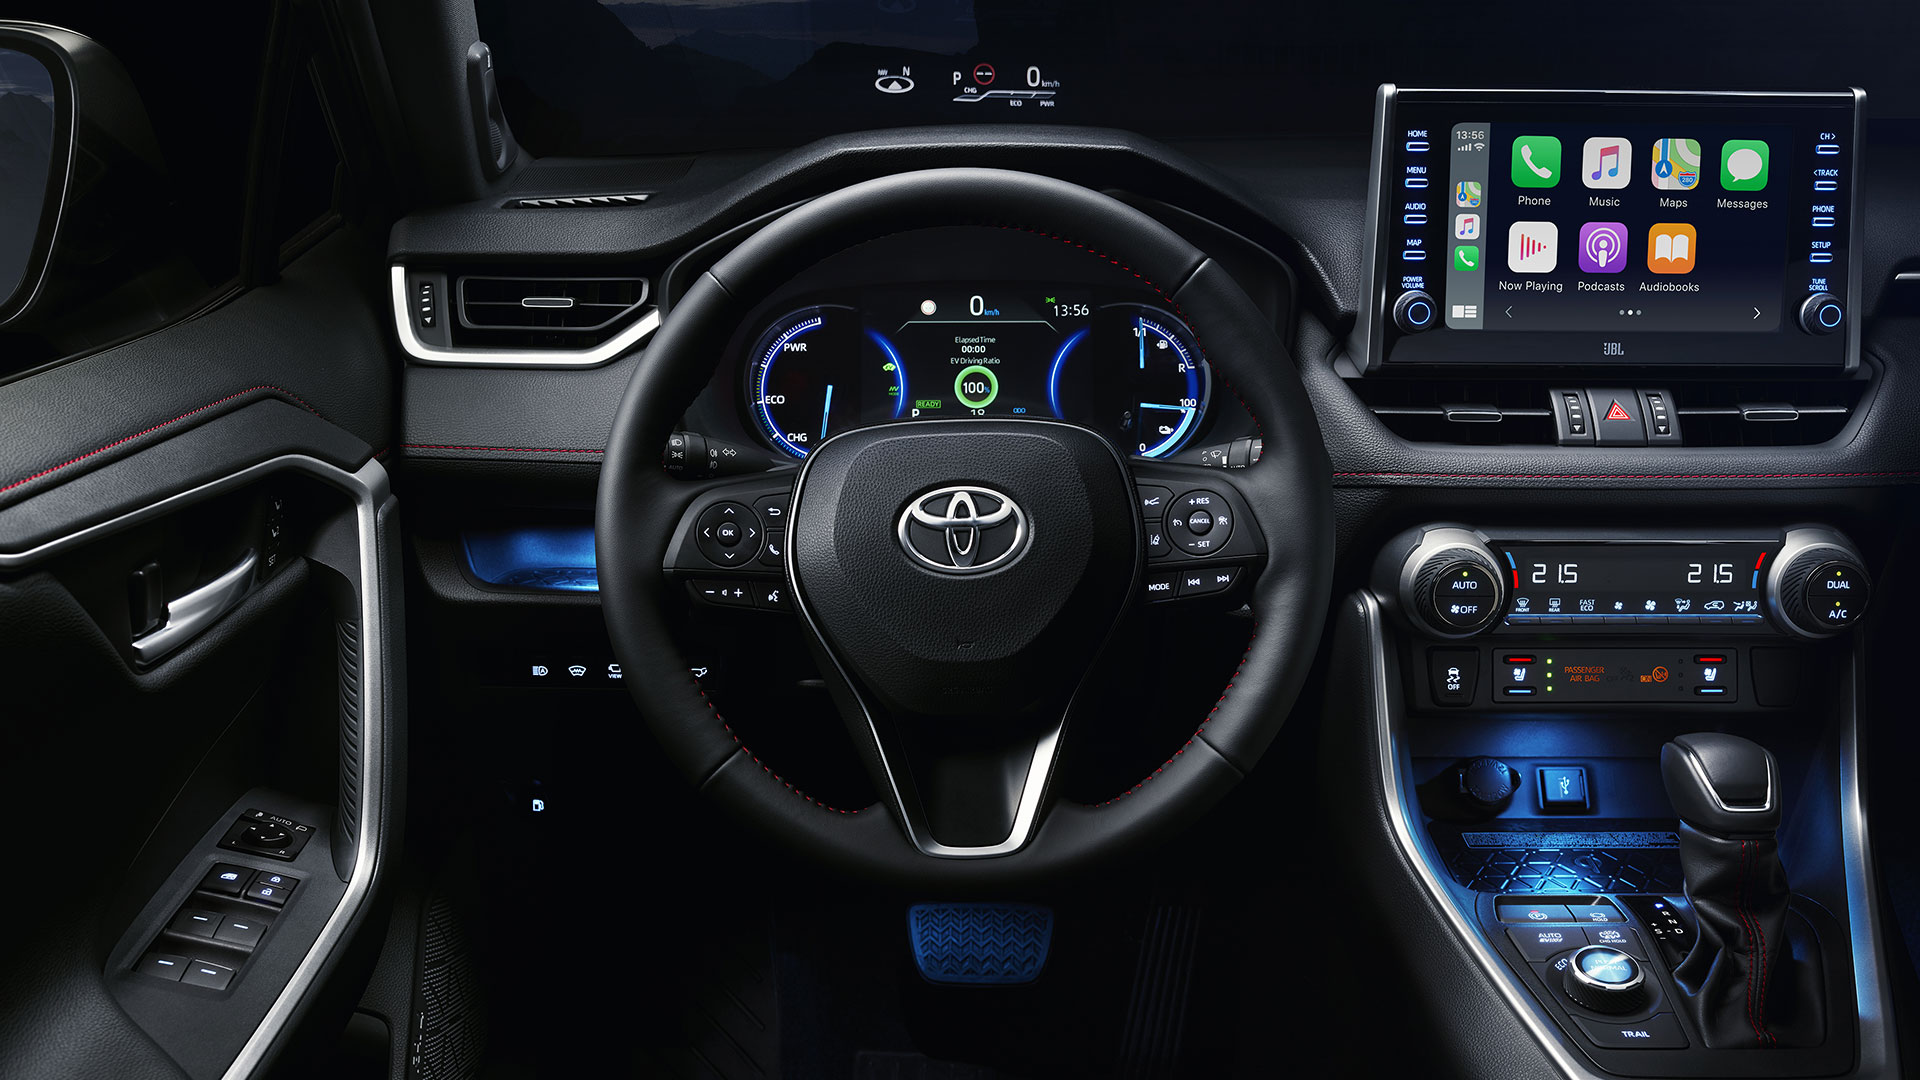 Interior comfort and styling, no compromise